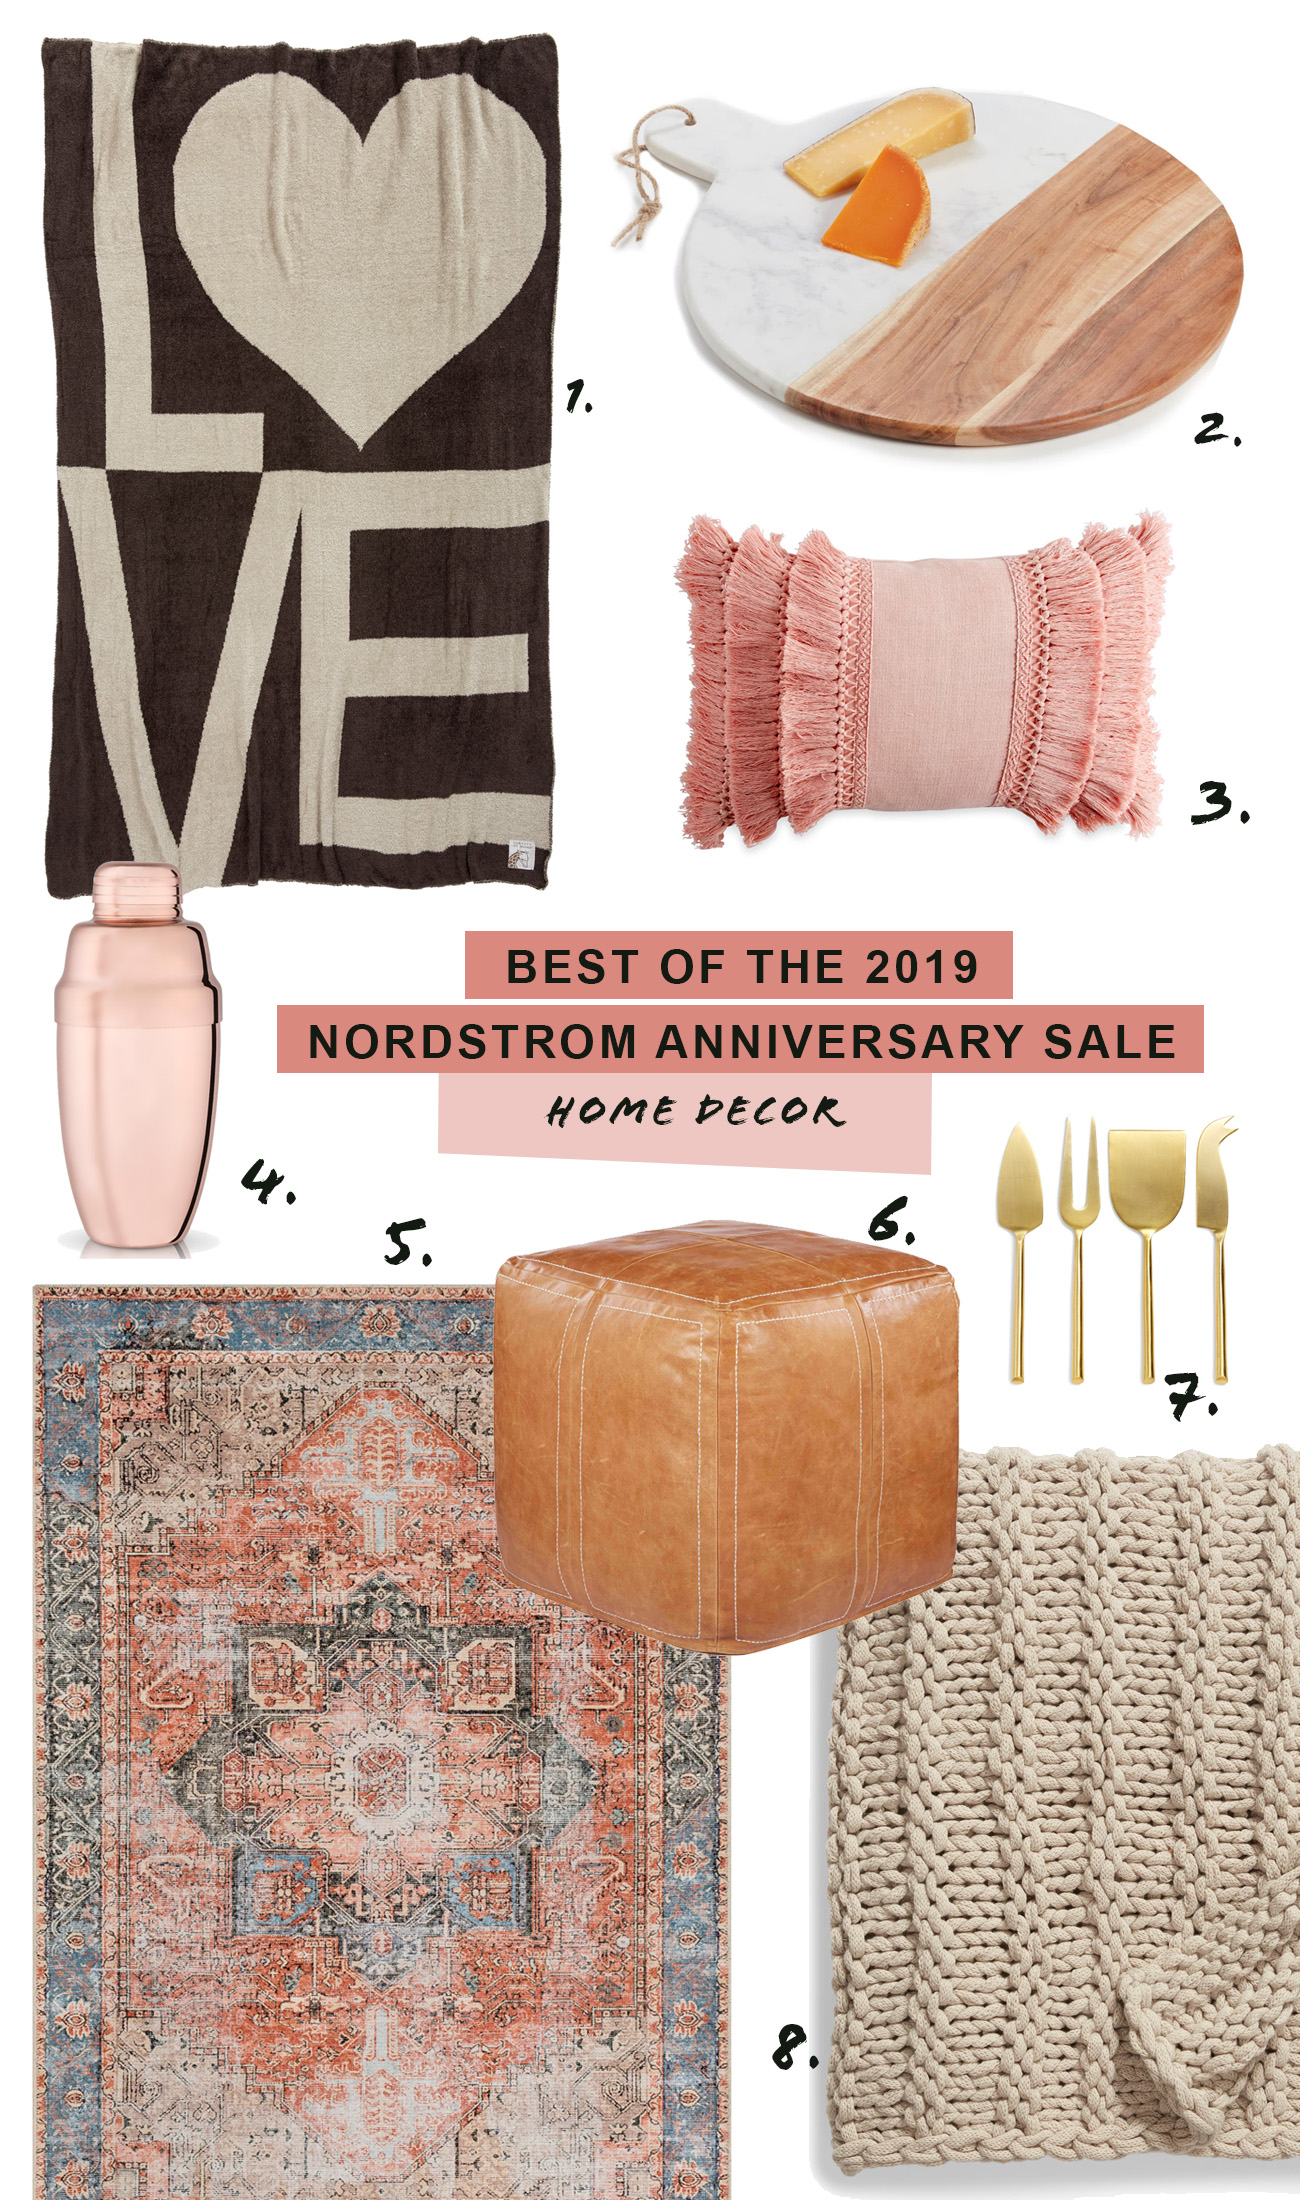 Nordstrom Anniversary Sale Home Decor Finds